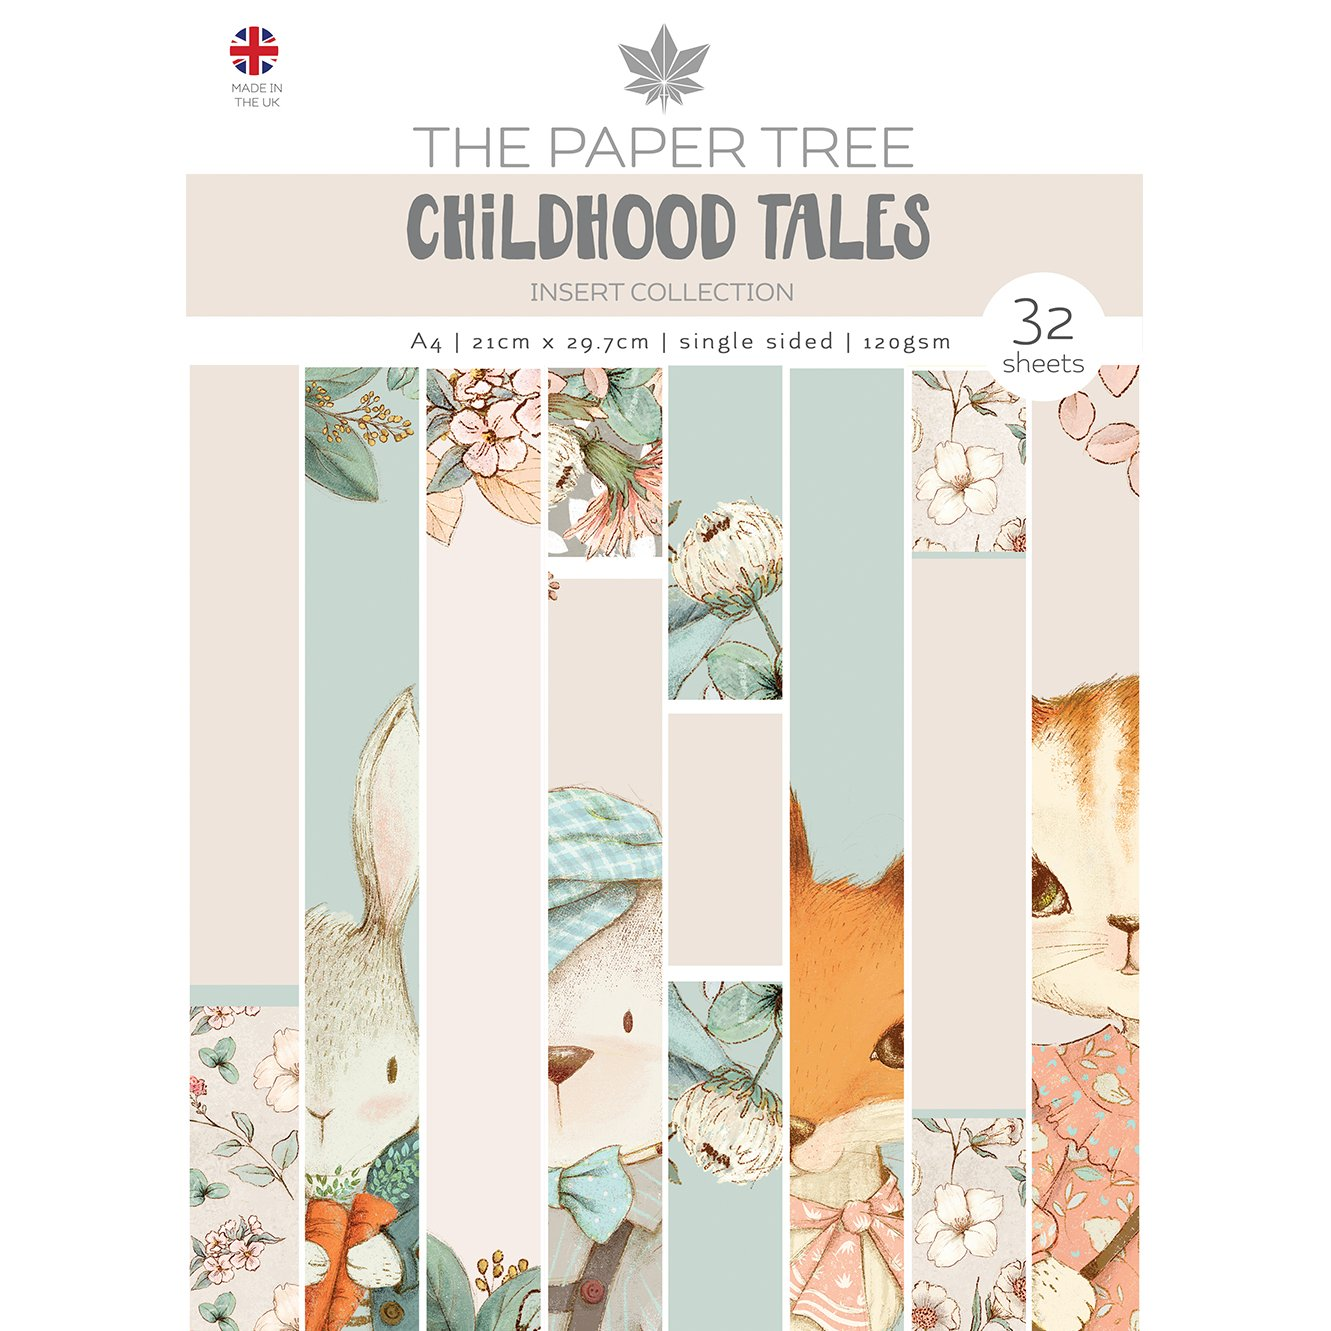 The Paper Tree Childhood Tales A4 Insert Collection